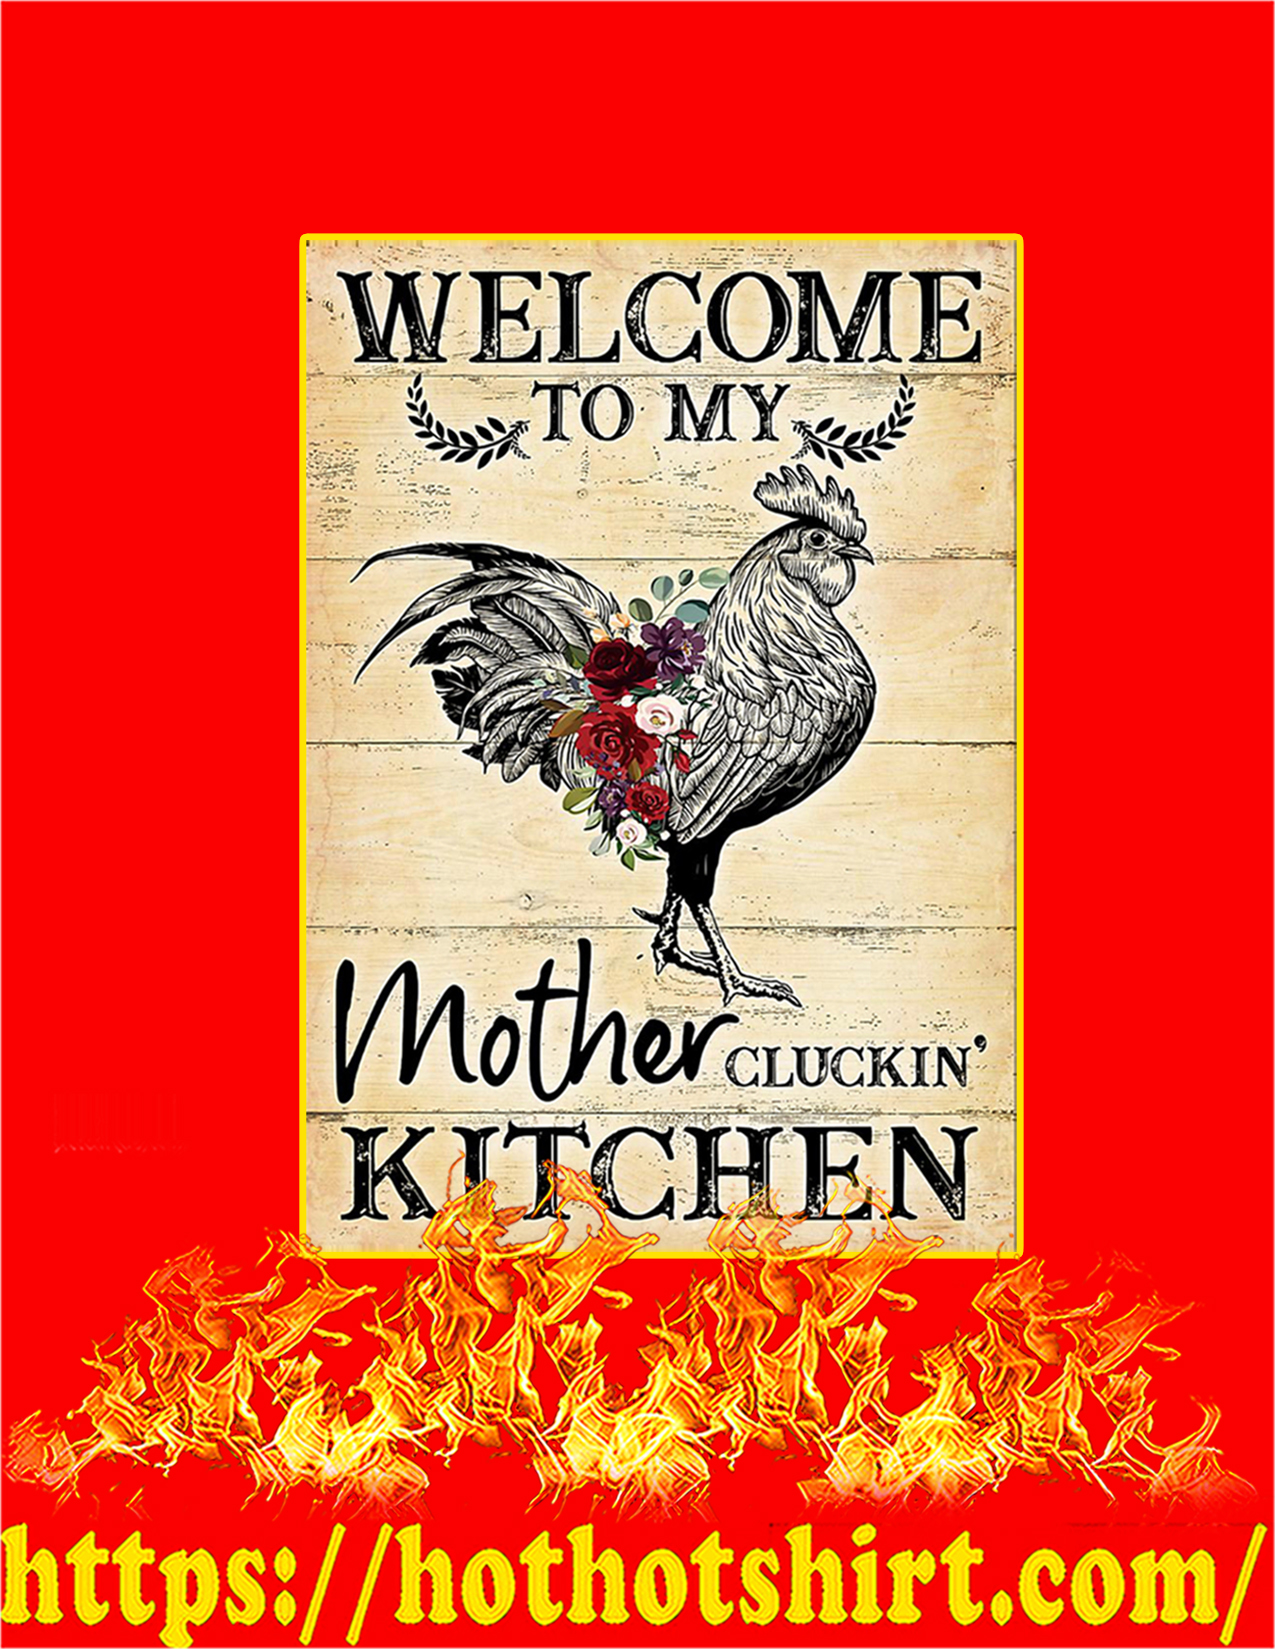 Welcome to my mother cluckin kitchen poster - A2